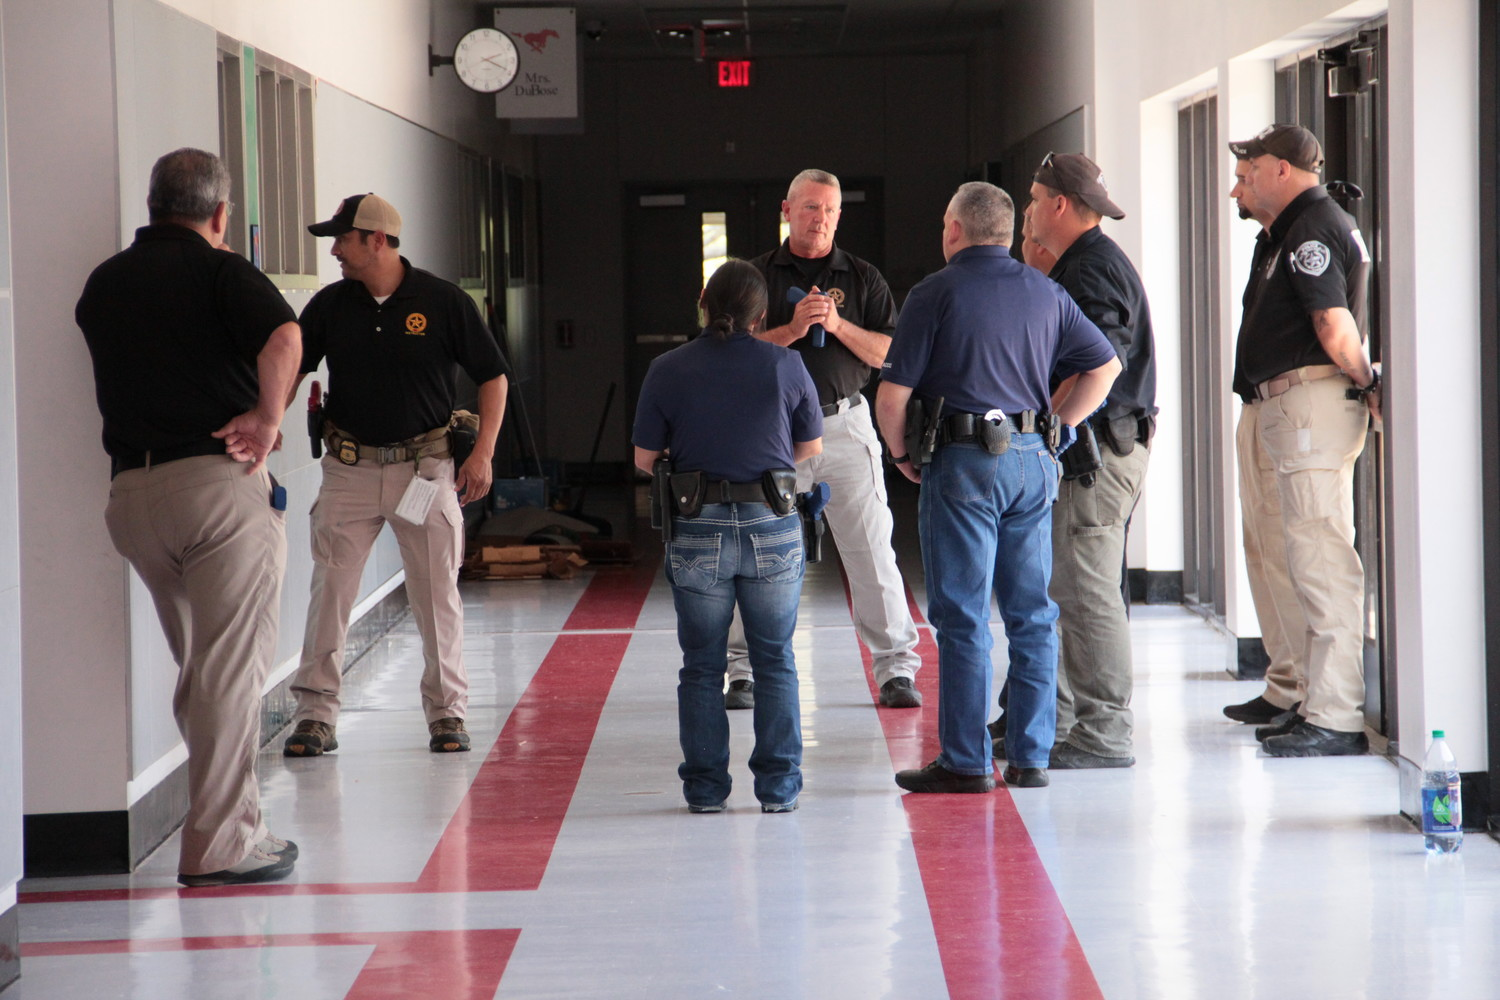 Officers from several agencies attended the ALERRT class at Smiley Elementary. Live scenarios were performed in the very halls where students will return in a matter of weeks.